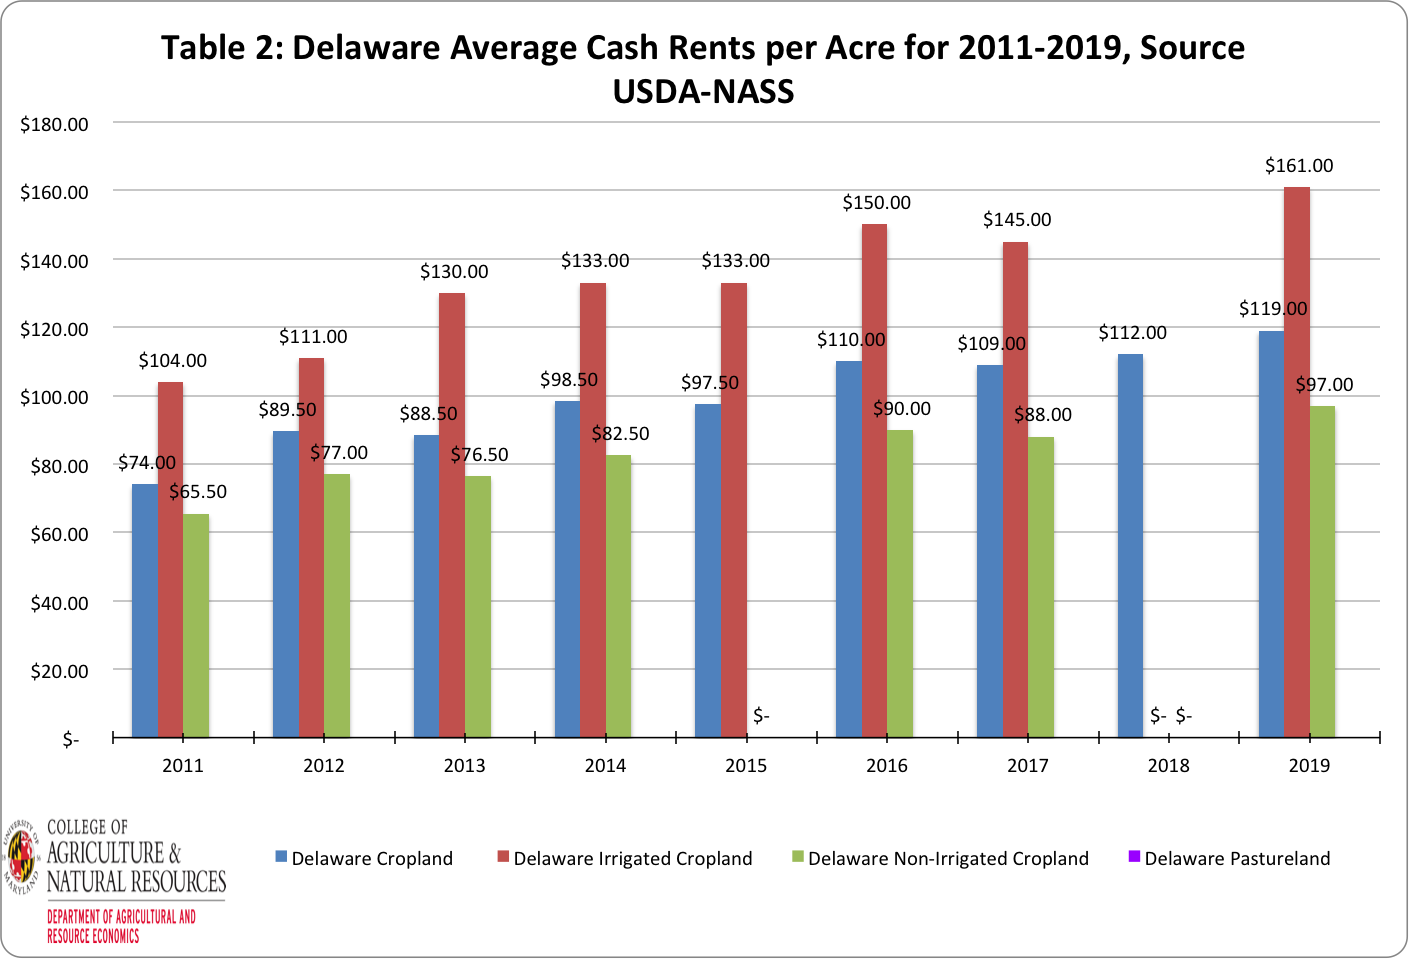 Image of Table 2 showing Delaware rental rate averages from 2011 to 2019. Image by Paul Goeringer and Nerice Millet-Williams with data from USDA-NASS.